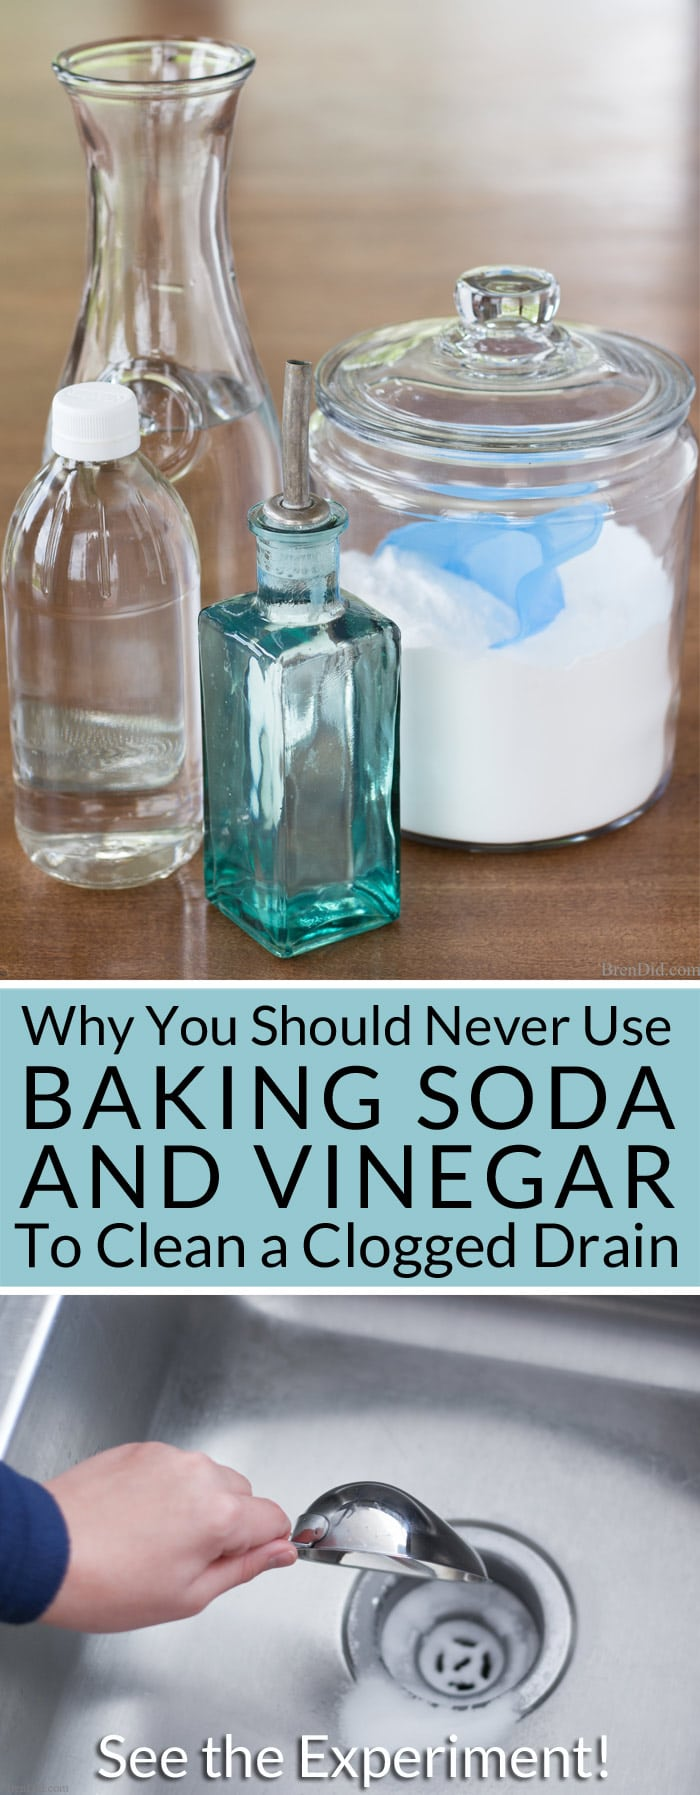 Why You Should Never Use Baking Soda And Vinegar To Clean Clogged Drains Bren Did